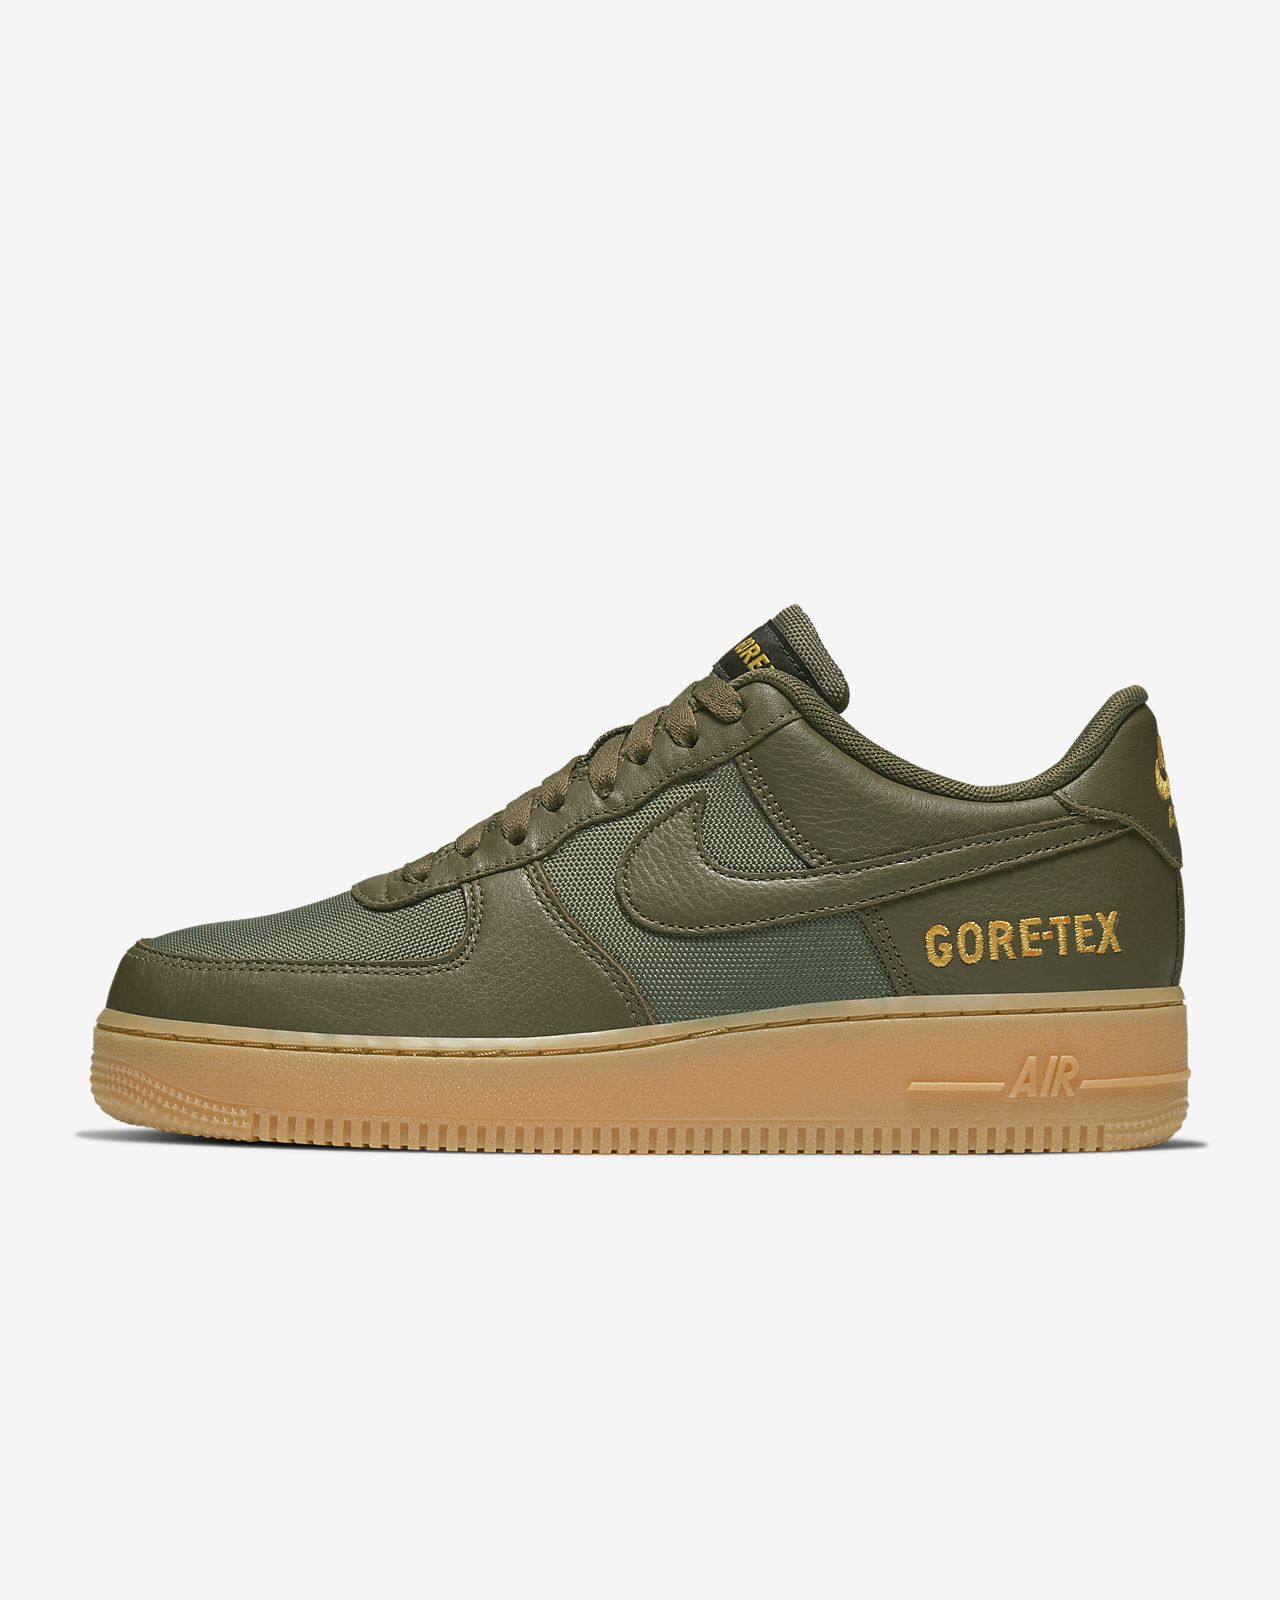 Nike Air Force 1 GORE TEX ® Shoe